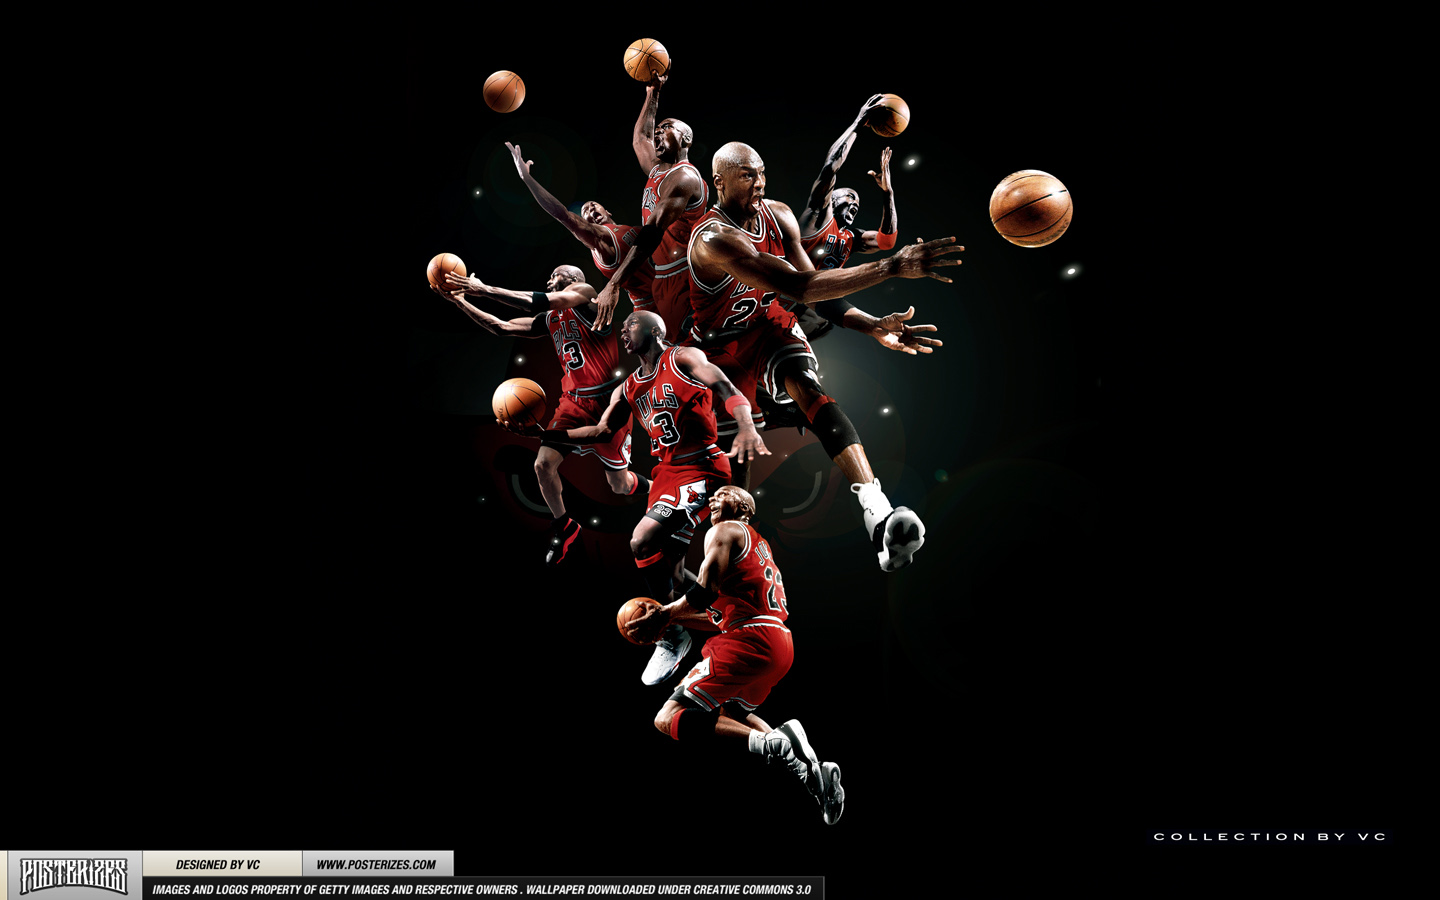 1440x900 - Michael Jordan Wallpapers 19